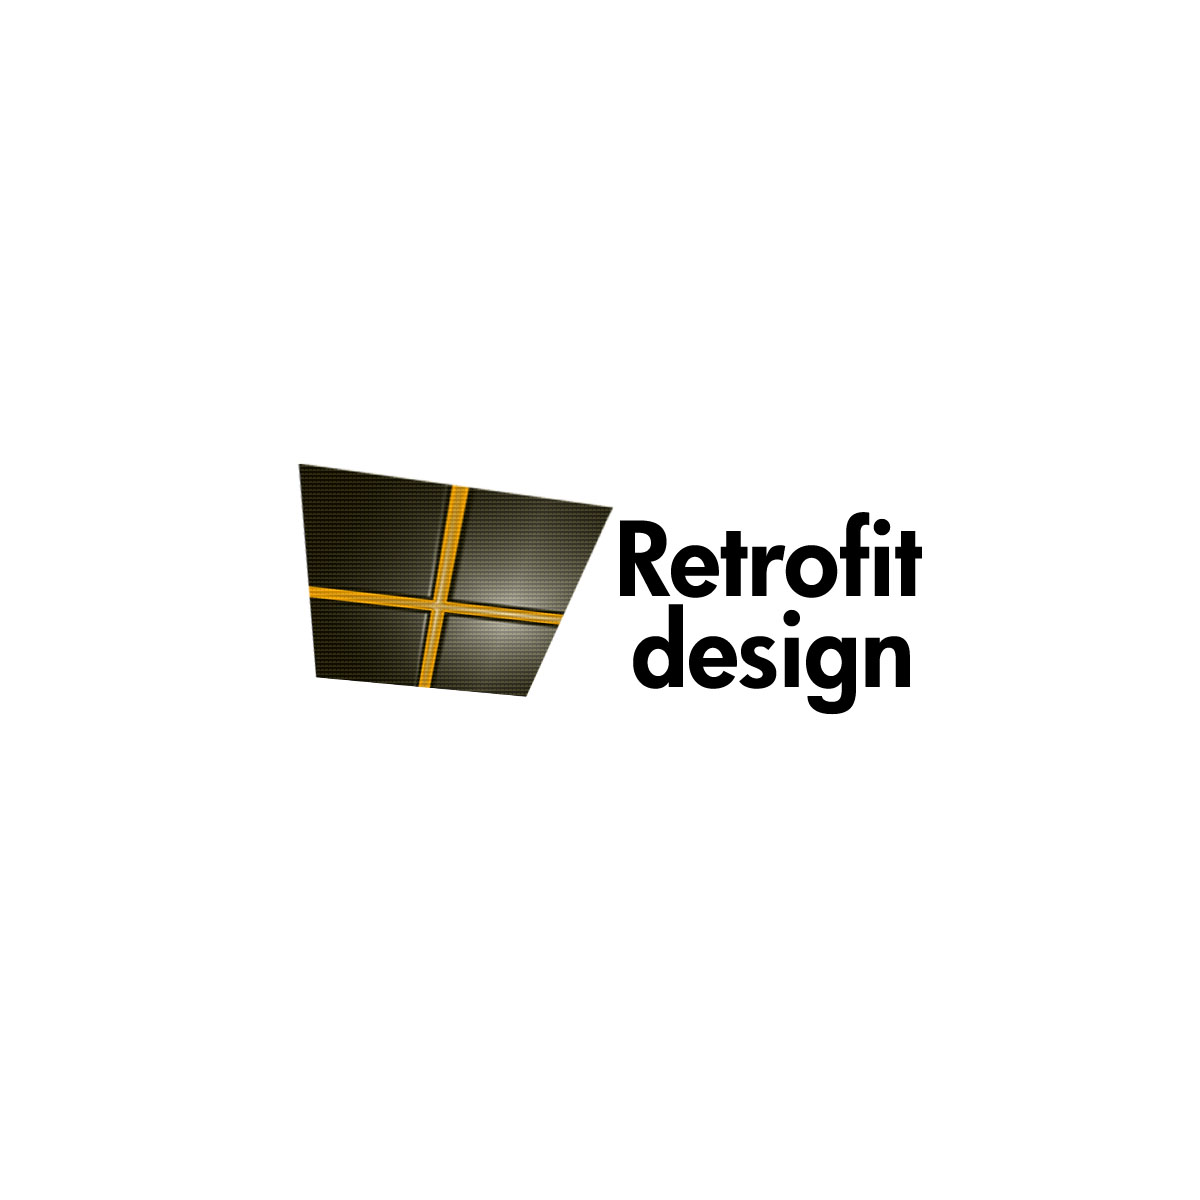 Logo Design by Moag - Entry No. 202 in the Logo Design Contest Inspiring Logo Design for retrofit design.